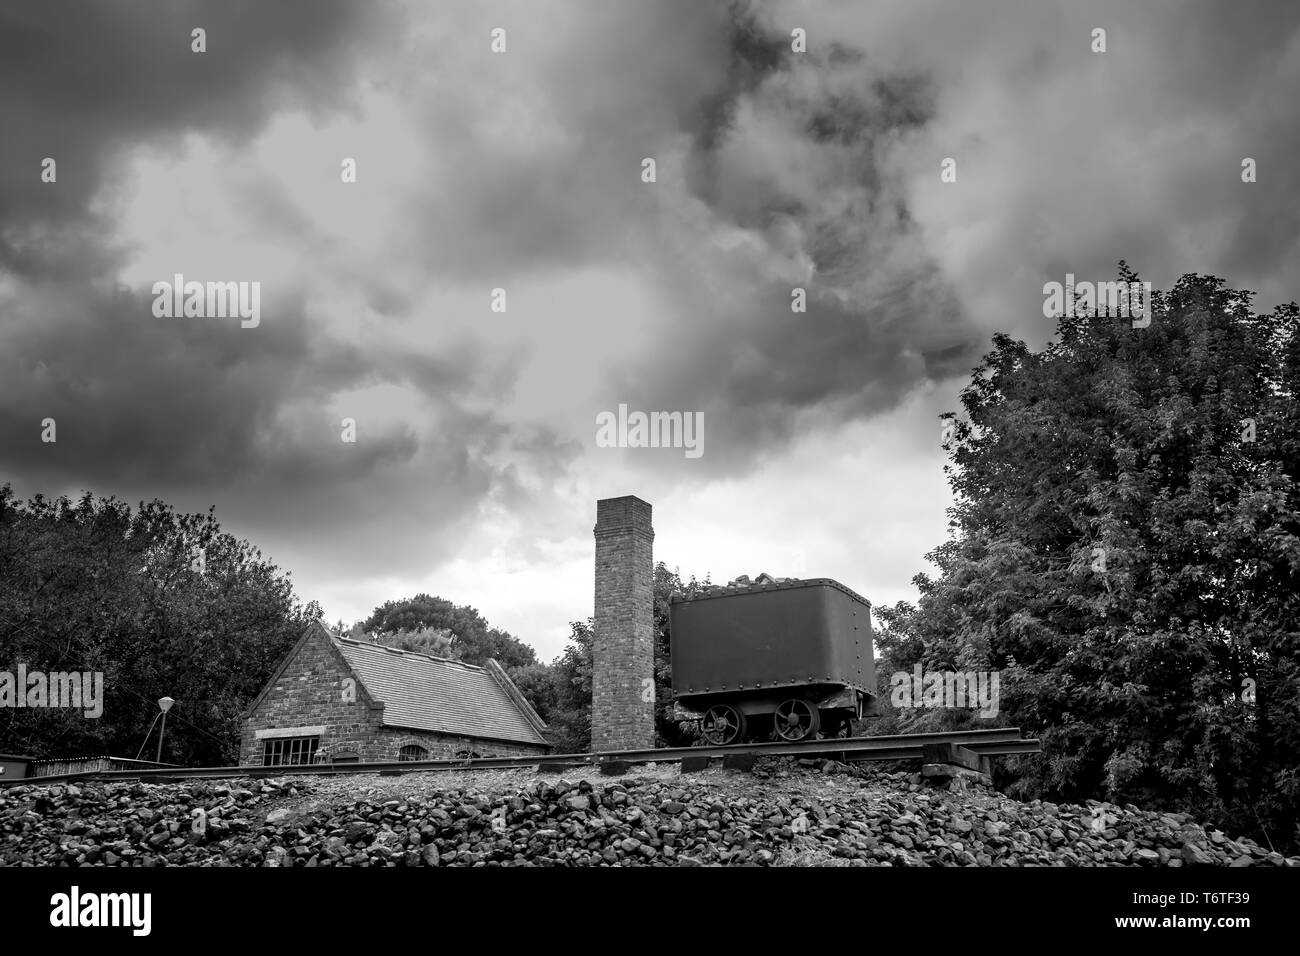 Moody, atmospheric, black and white, landscape photograph of dark clouds over coal mining colliery, Black Country Living Museum, Dudley, UK. No people. - Stock Image